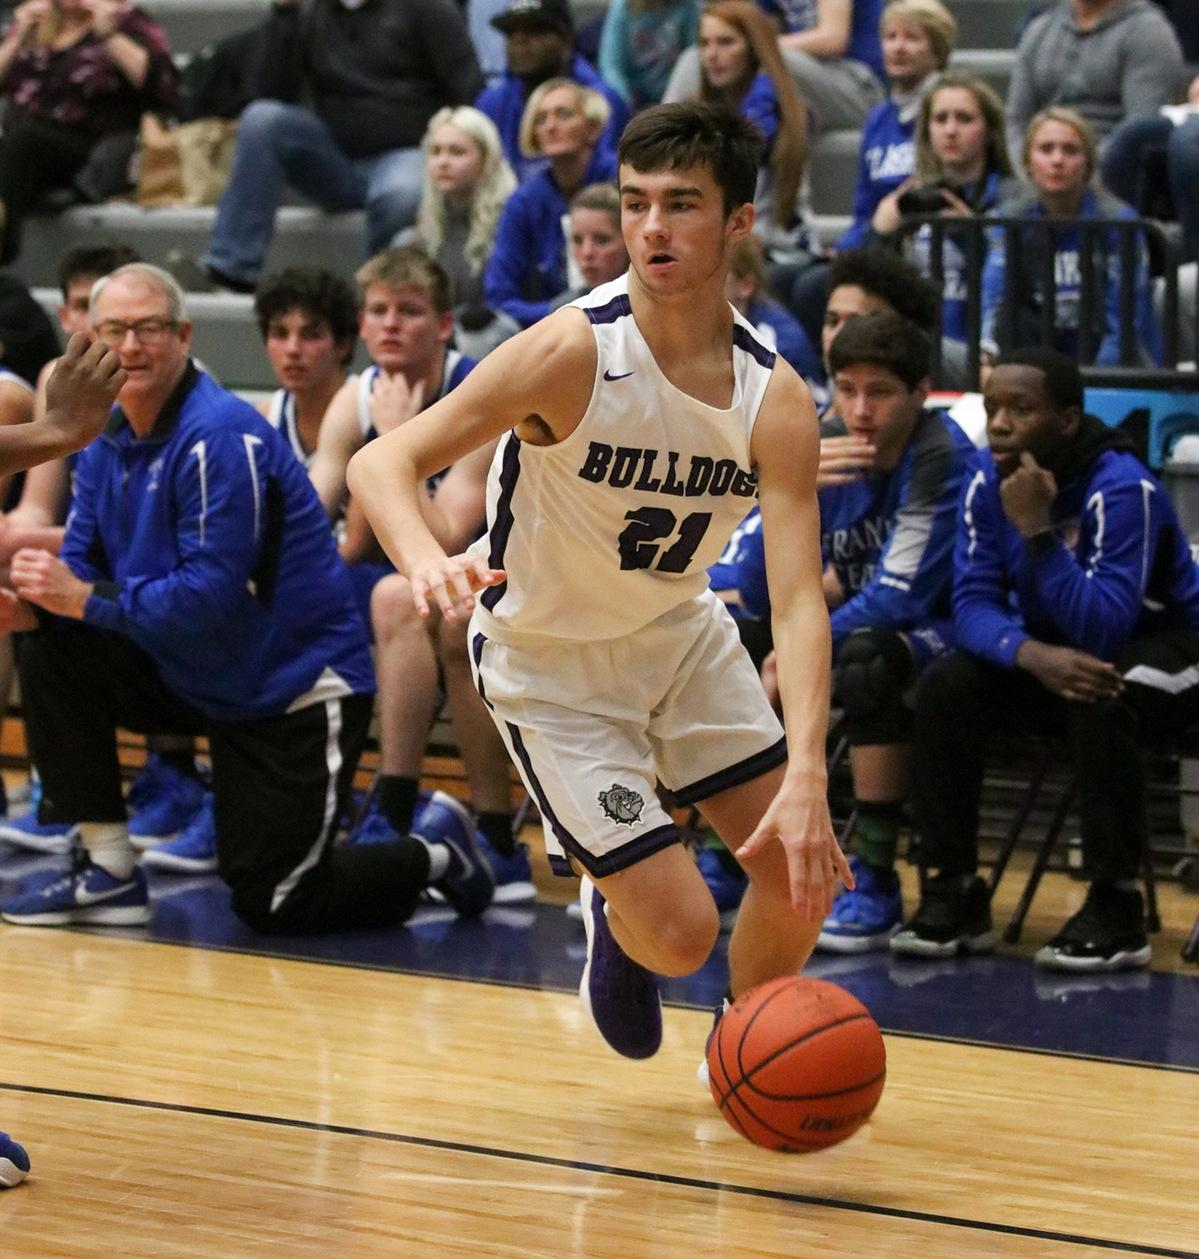 Career scoring night from Lucas helps No. 9/10 @bhsdogsbhoops top No. 10/19 Crispus Attucks